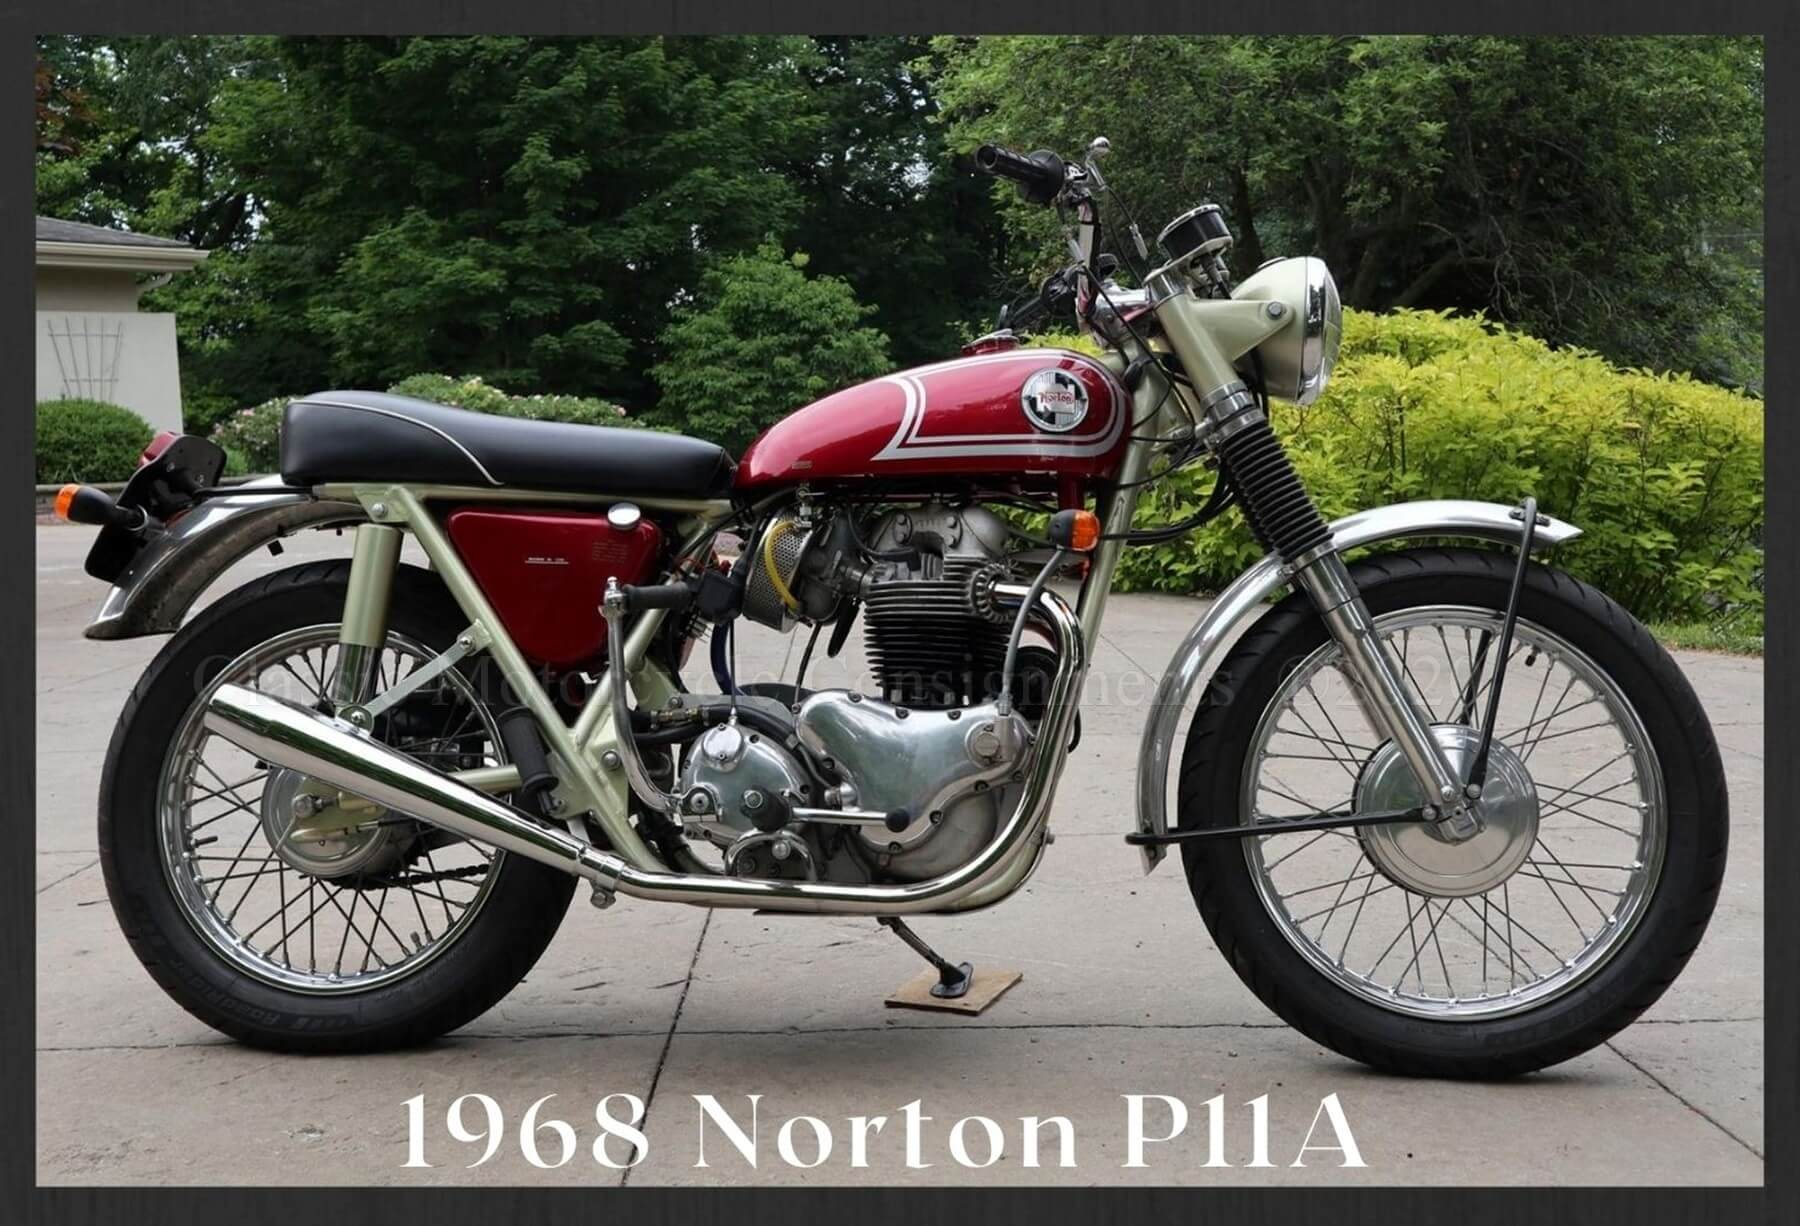 1968 Norton P11A Motorcycle